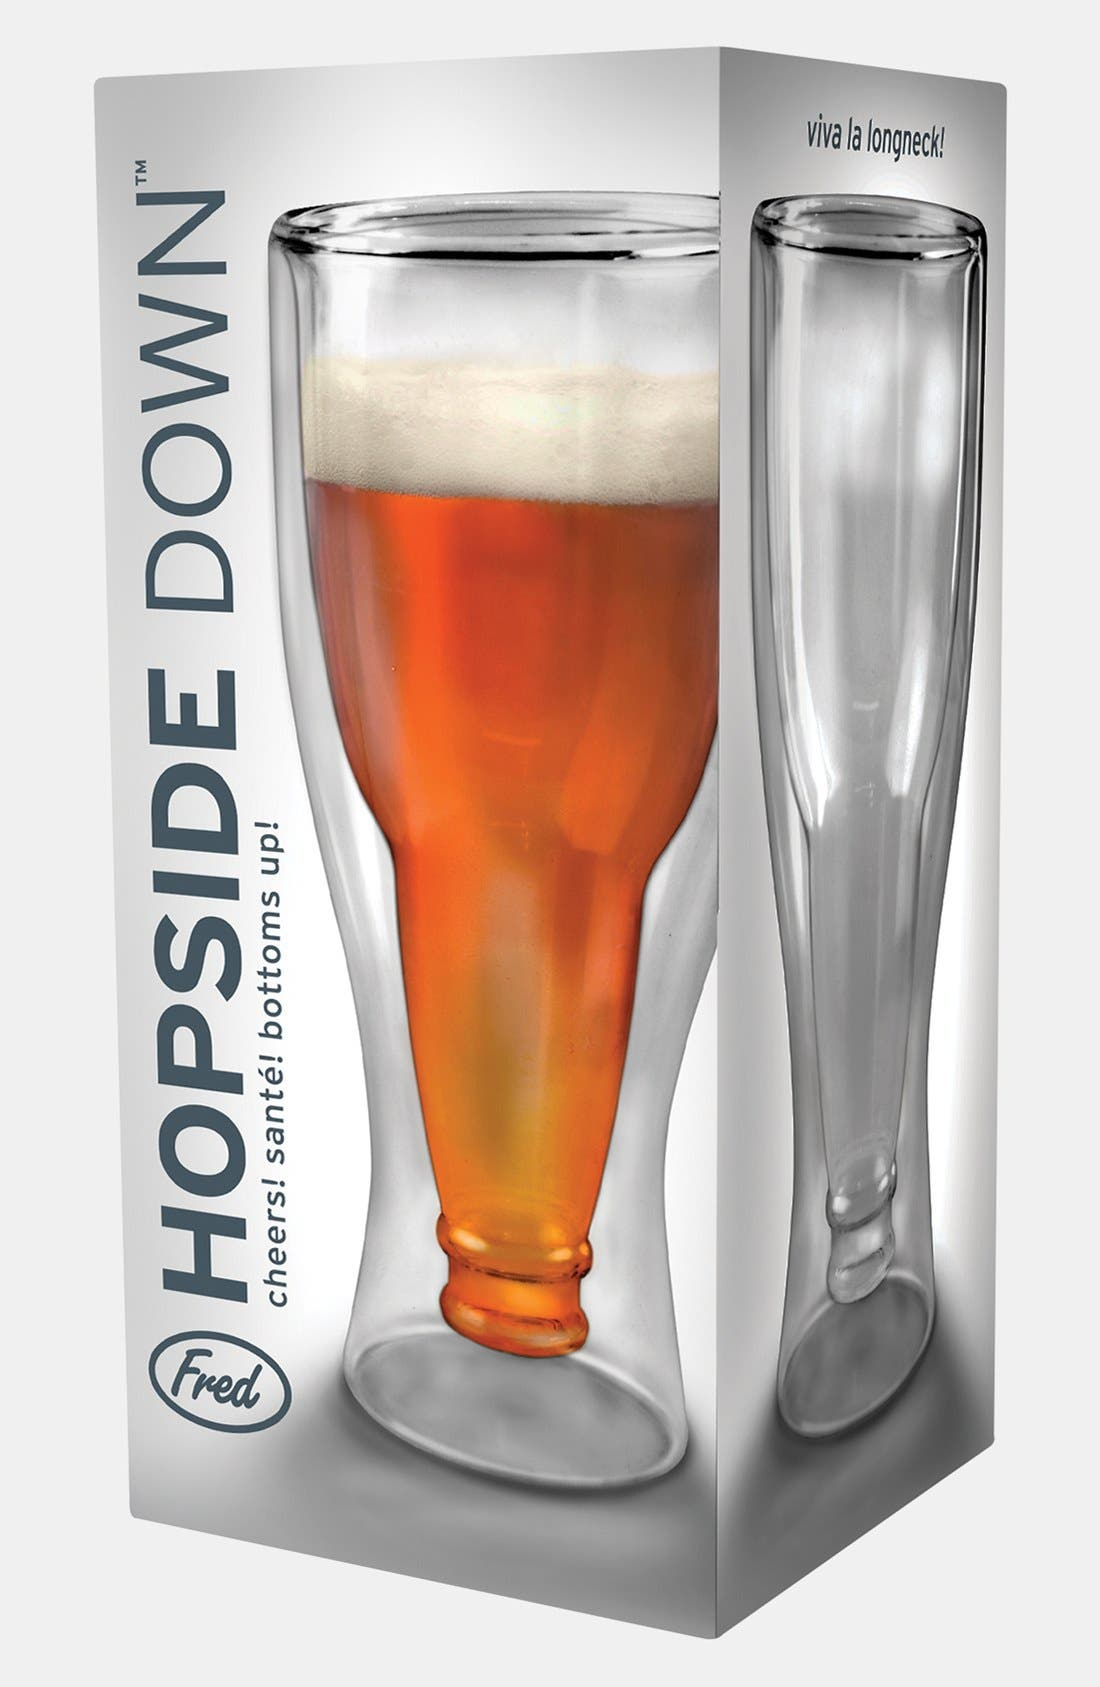 Alternate Image 2  - Upside Down Beer Bottle Glass